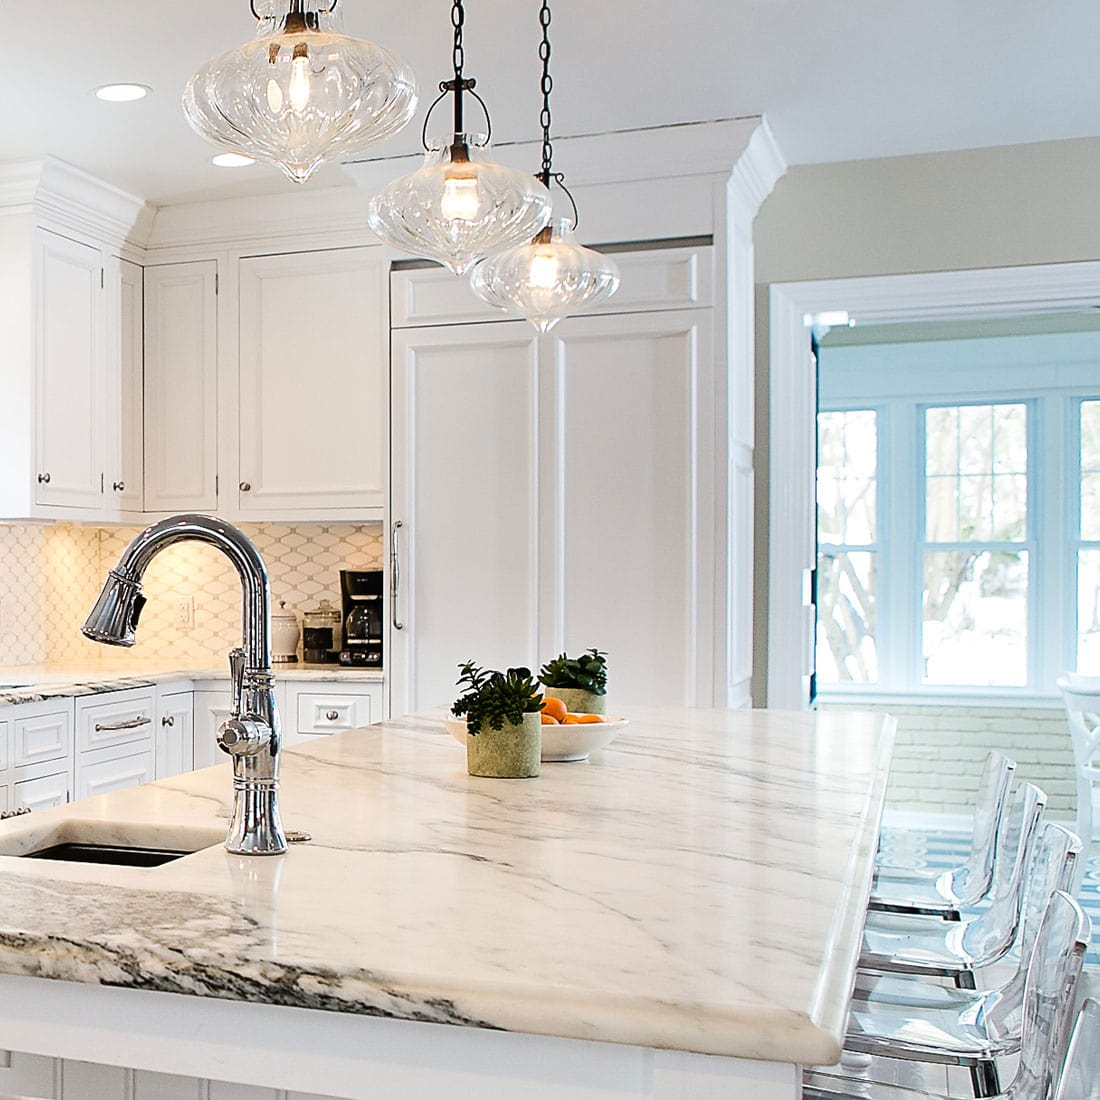 Chrome finishes with white marble island in renovated kitchen